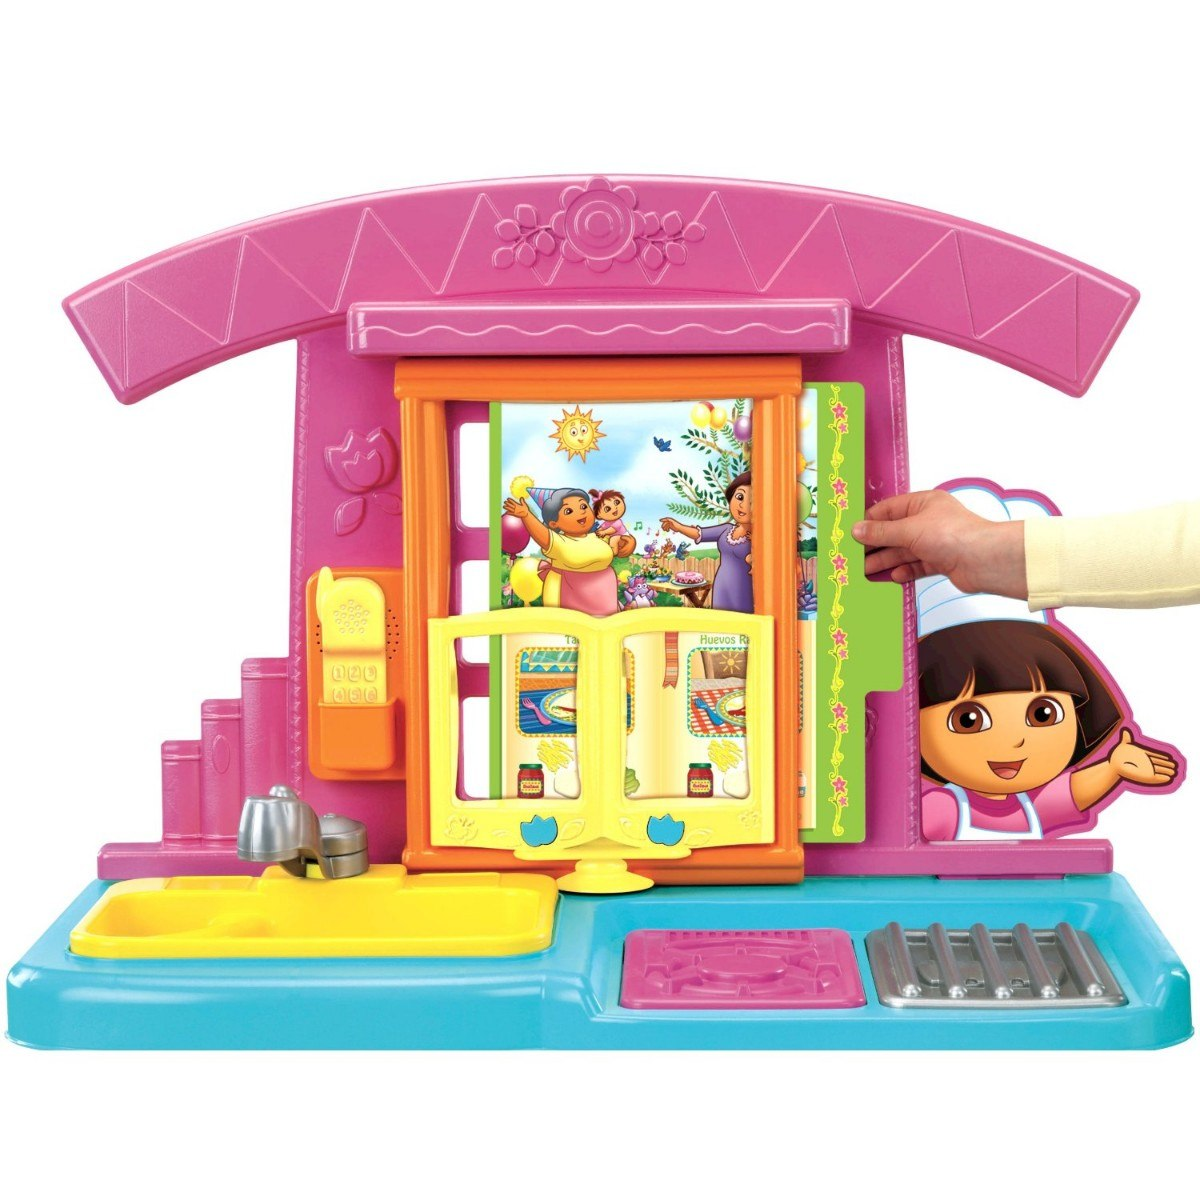 Cocina para ni as dora la exploradora fisher price - Cocina dora la exploradora fisher price ...